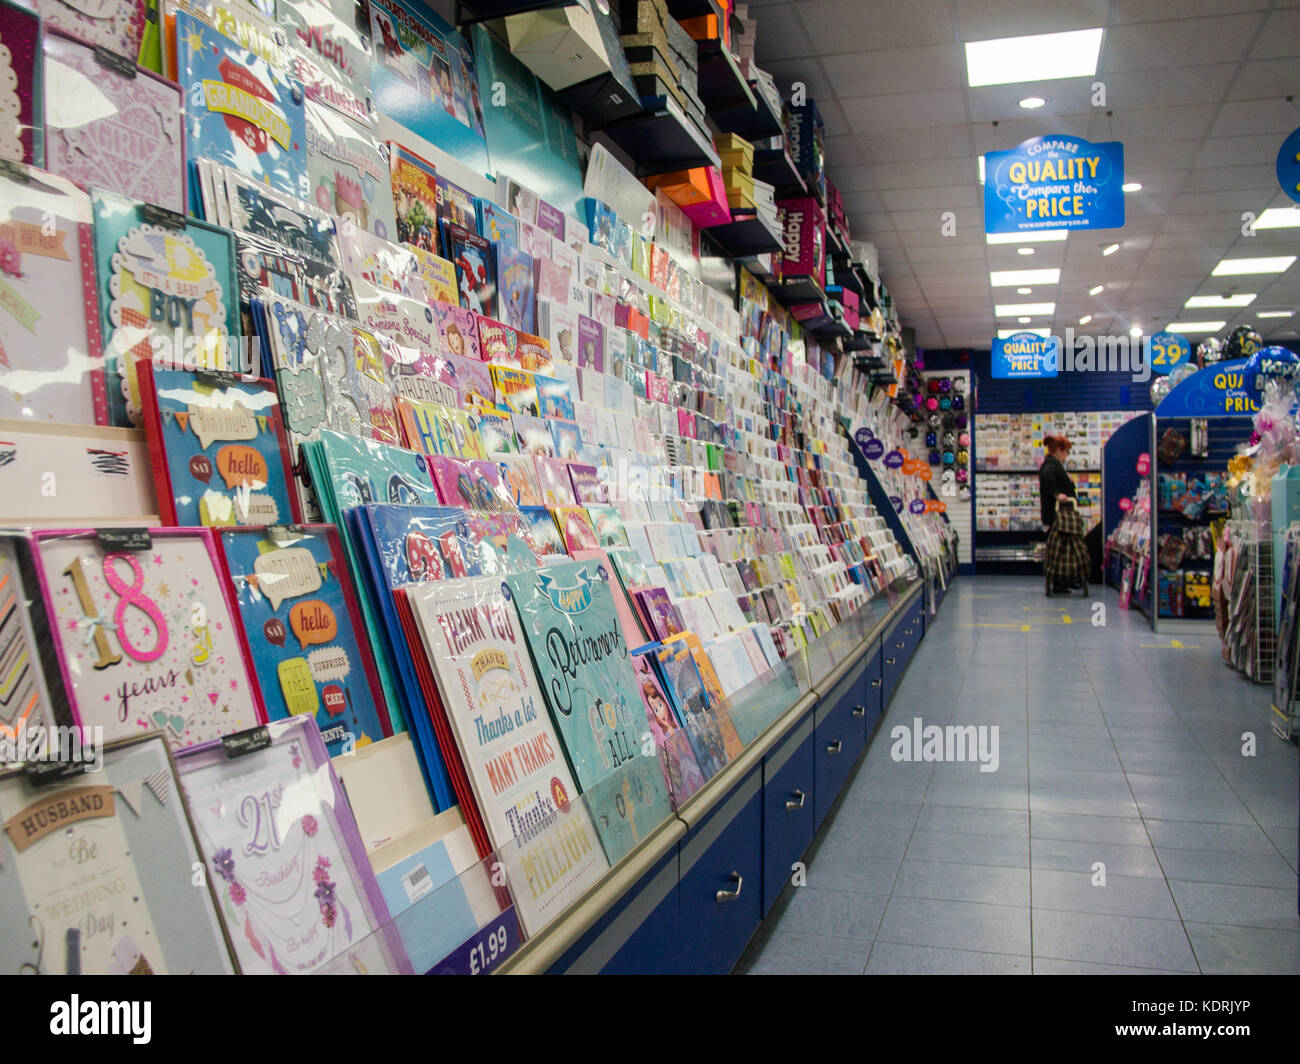 Grocery store card isle stock photos grocery store card isle greetings cards and shelving in a greeting card store stock image kristyandbryce Choice Image